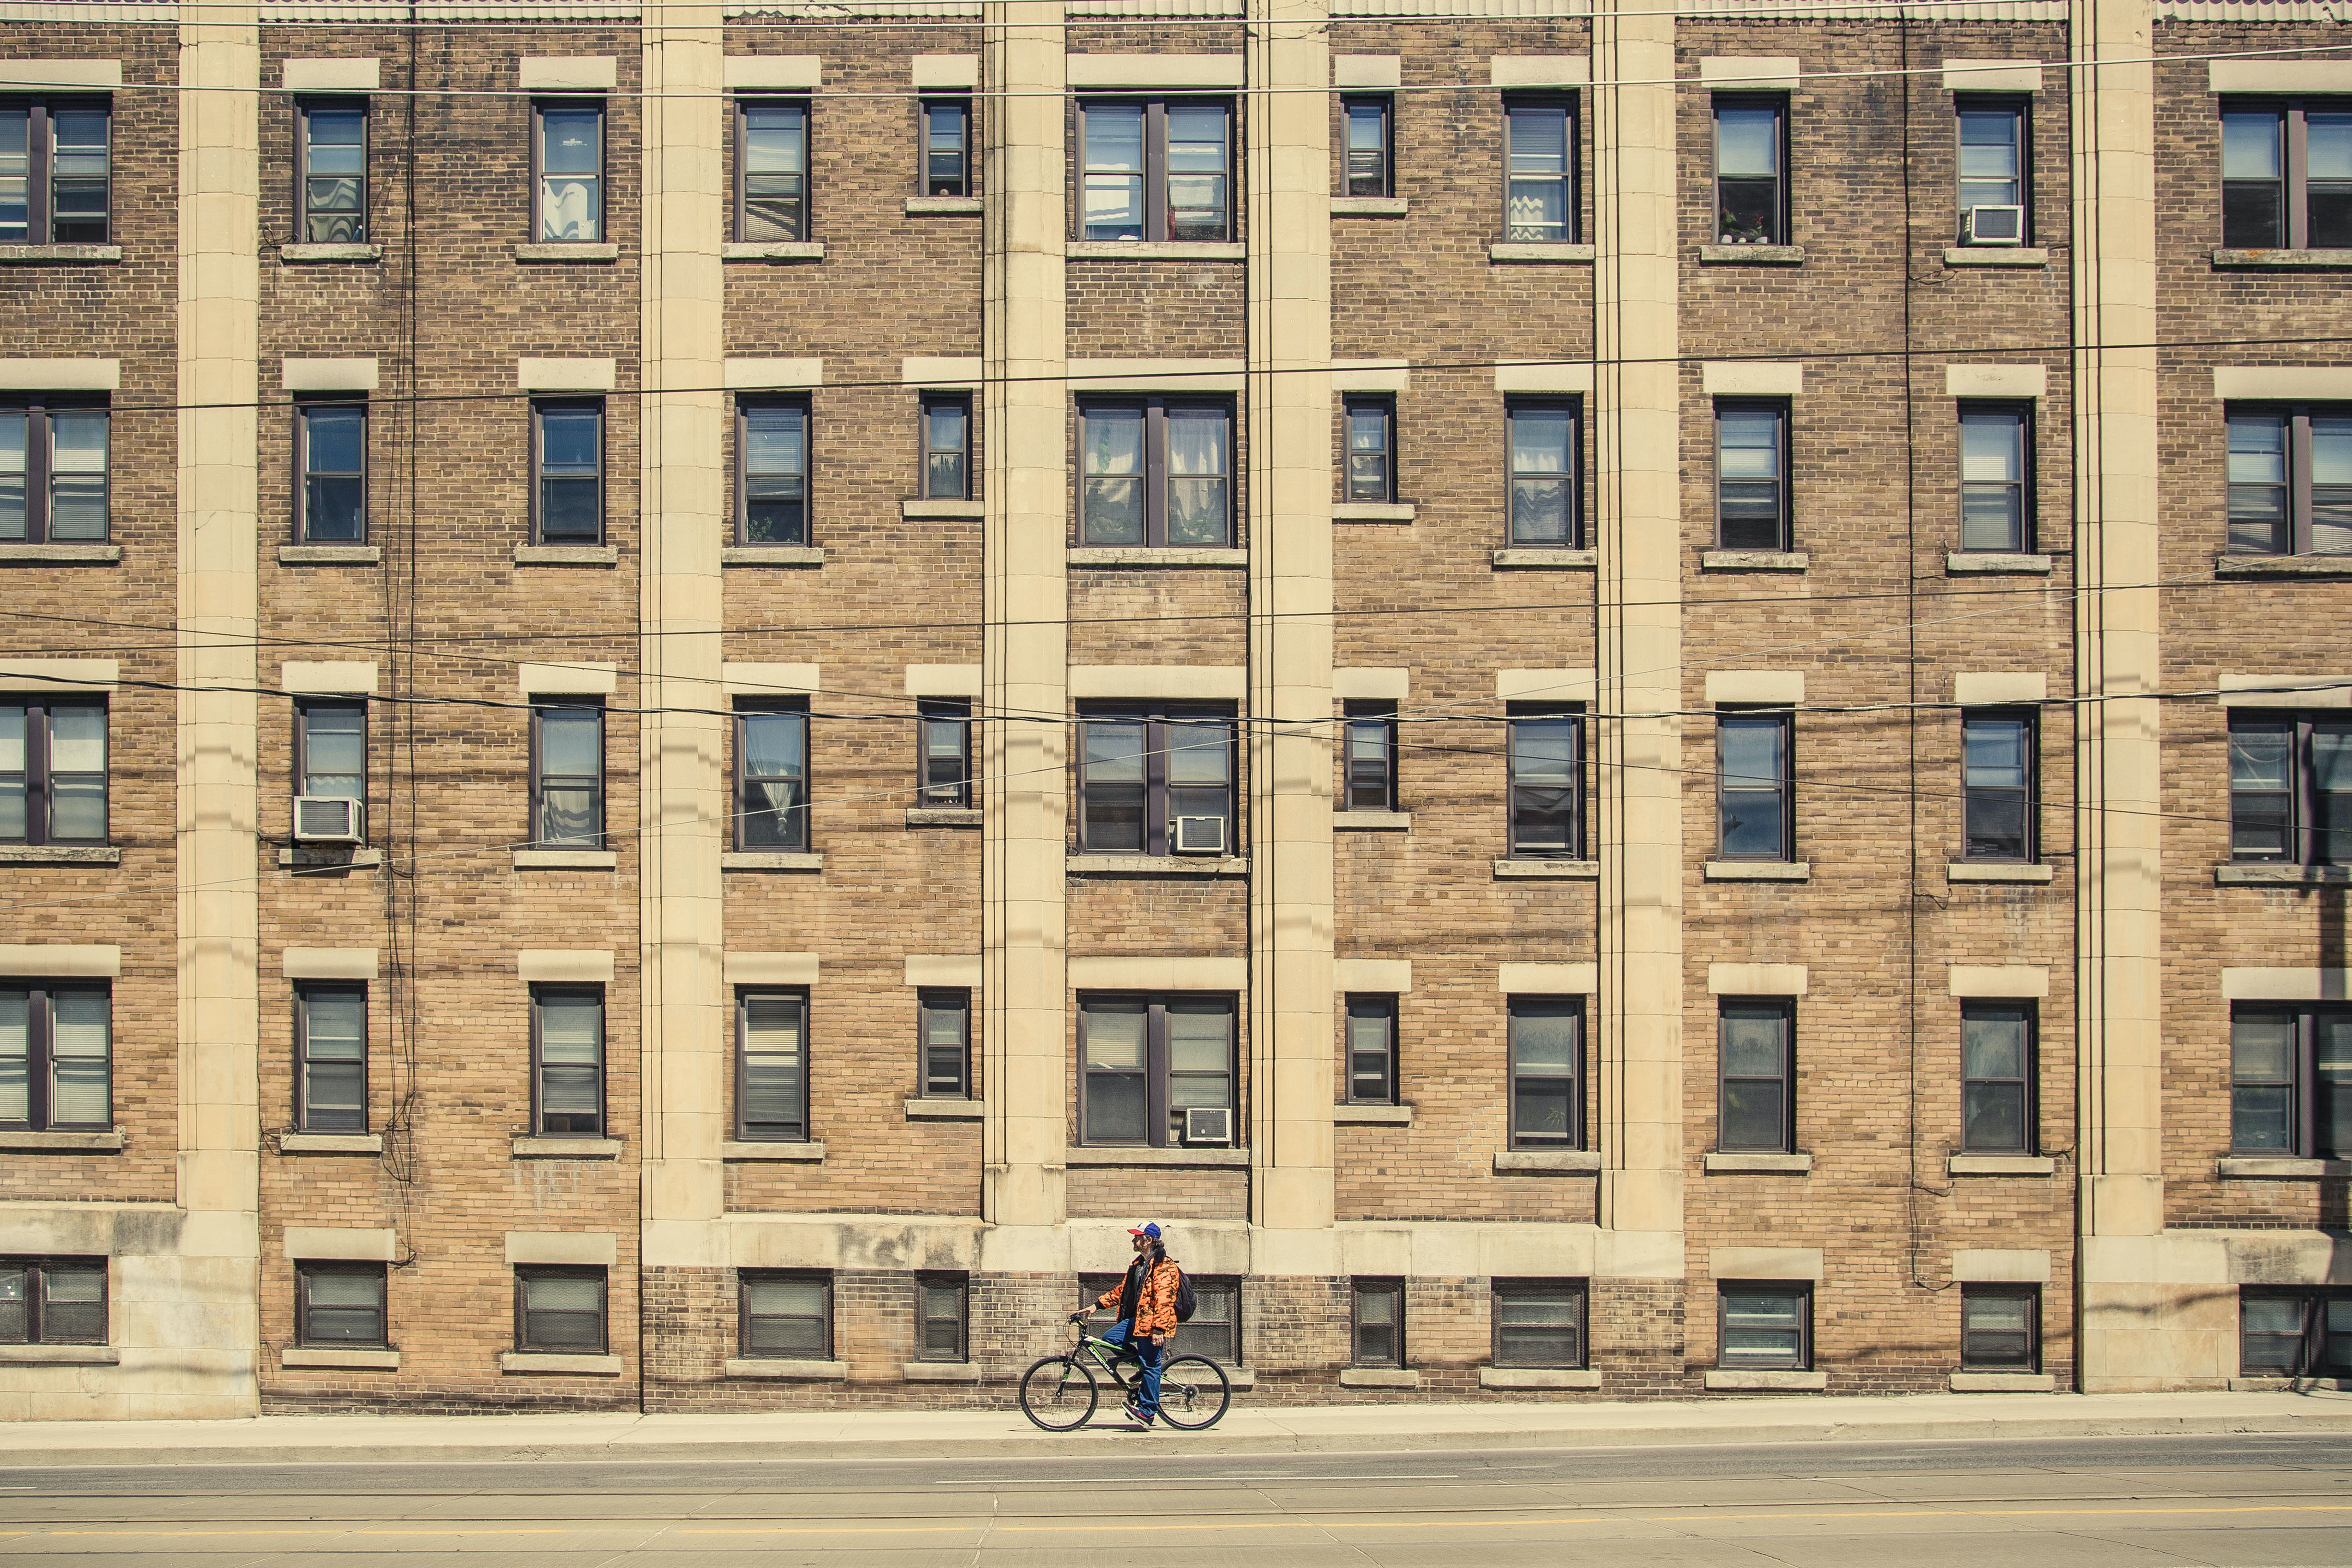 Man in orange coat resting on bike in front of brown urban apartment building with windows